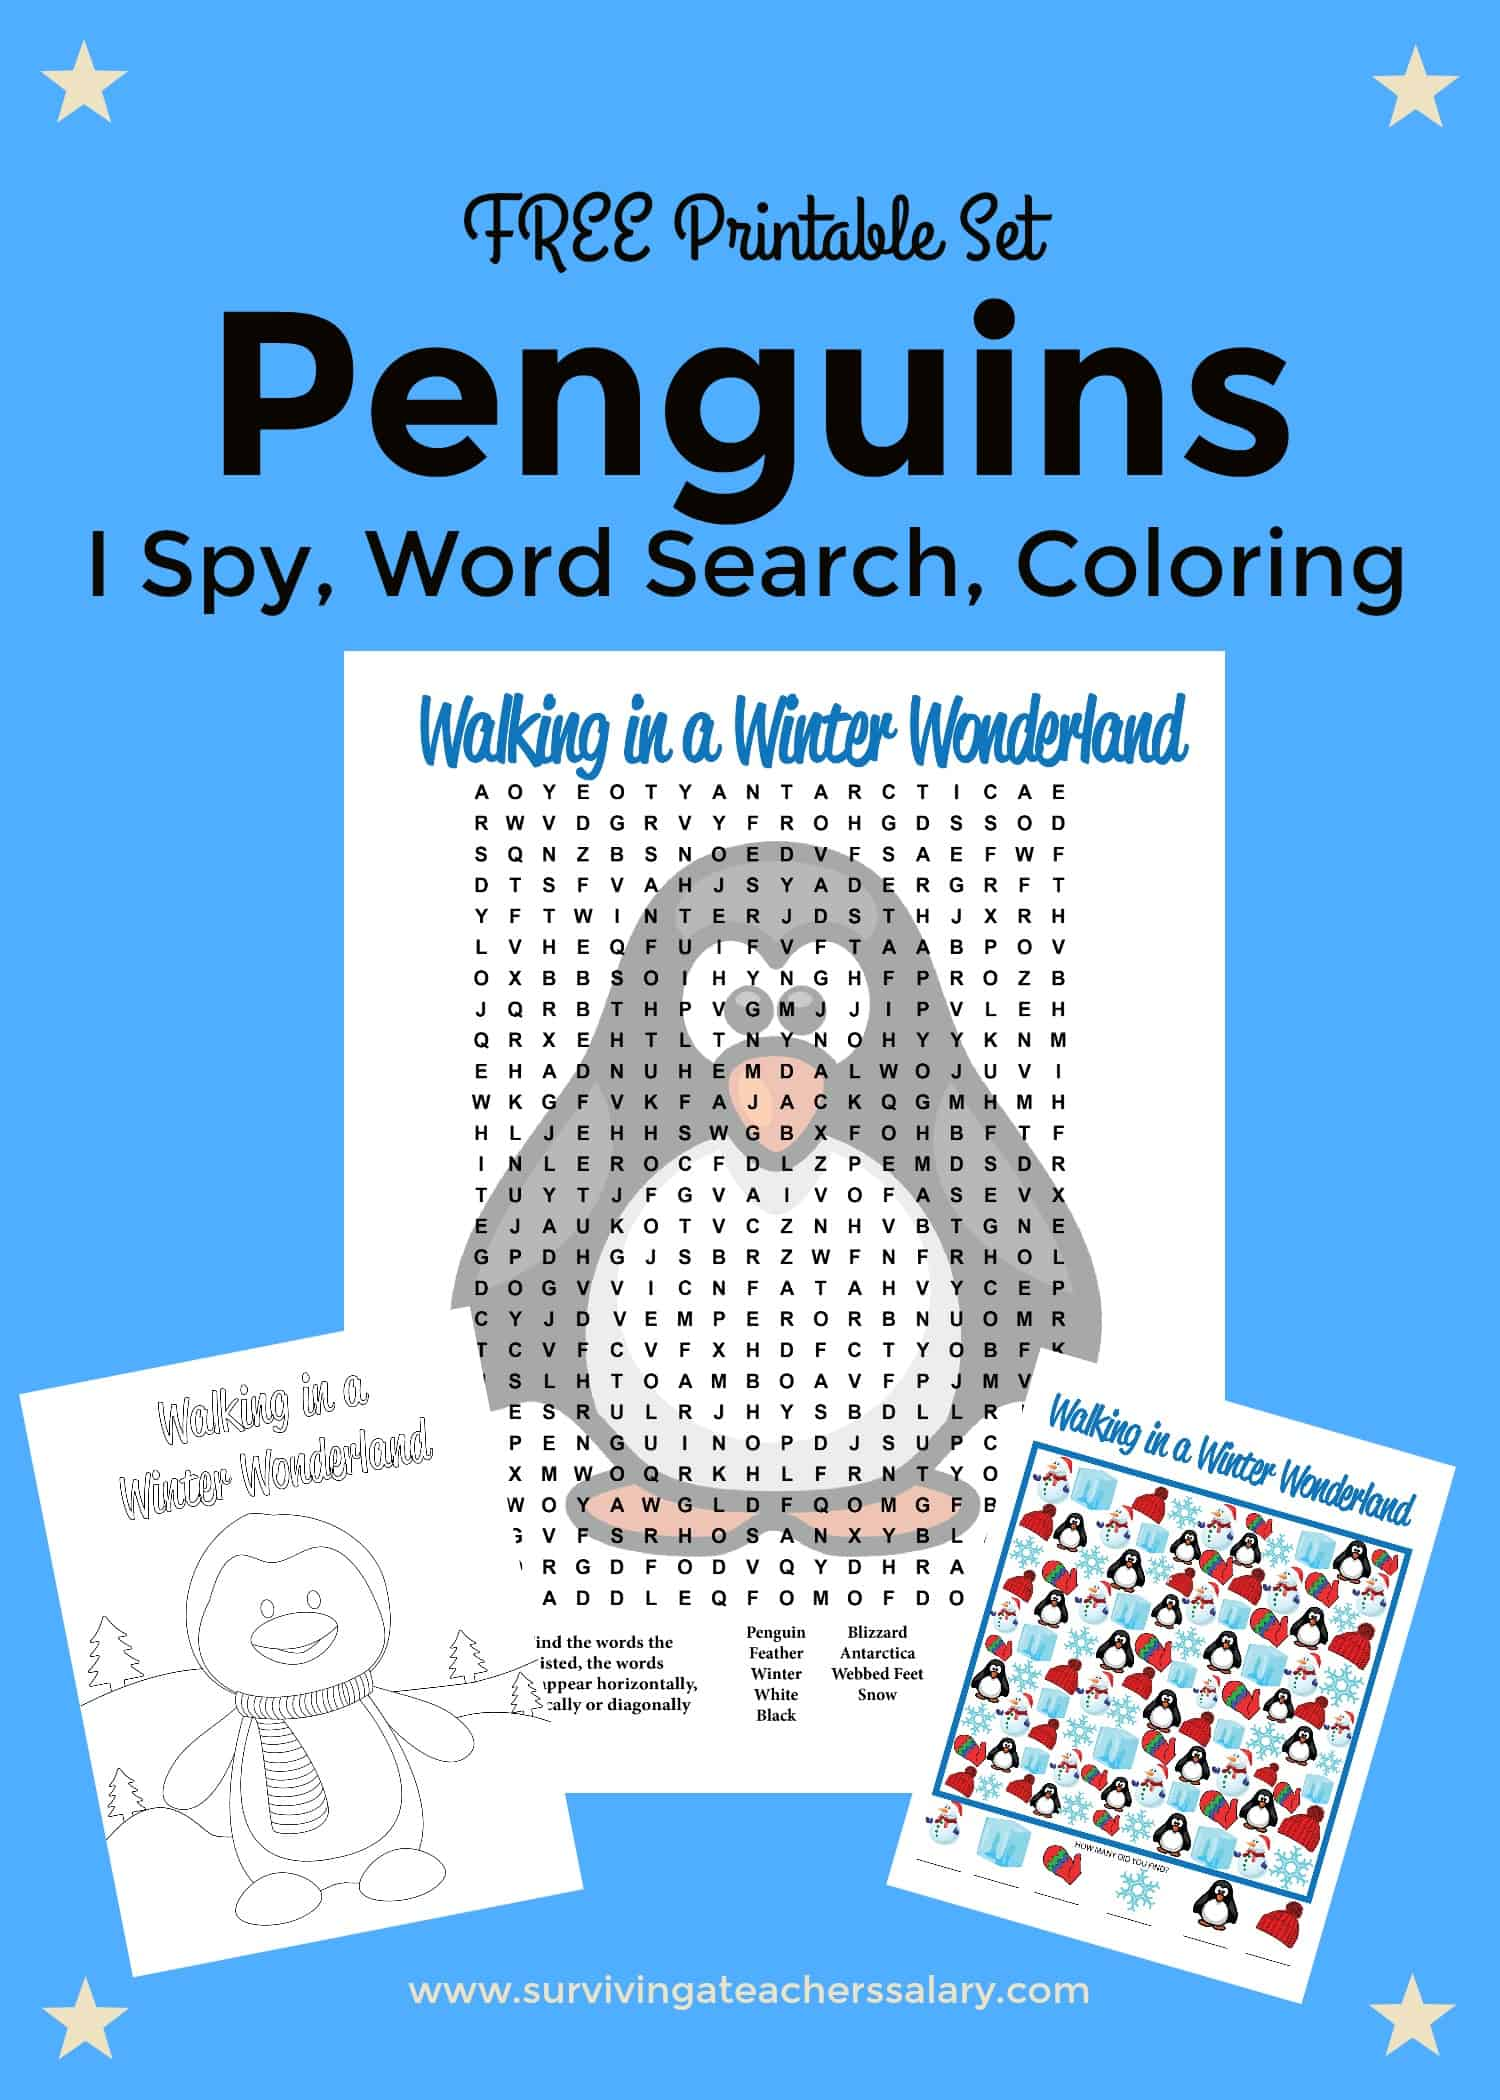 Free Printable Penguins Worksheets Coloring Sheet Word